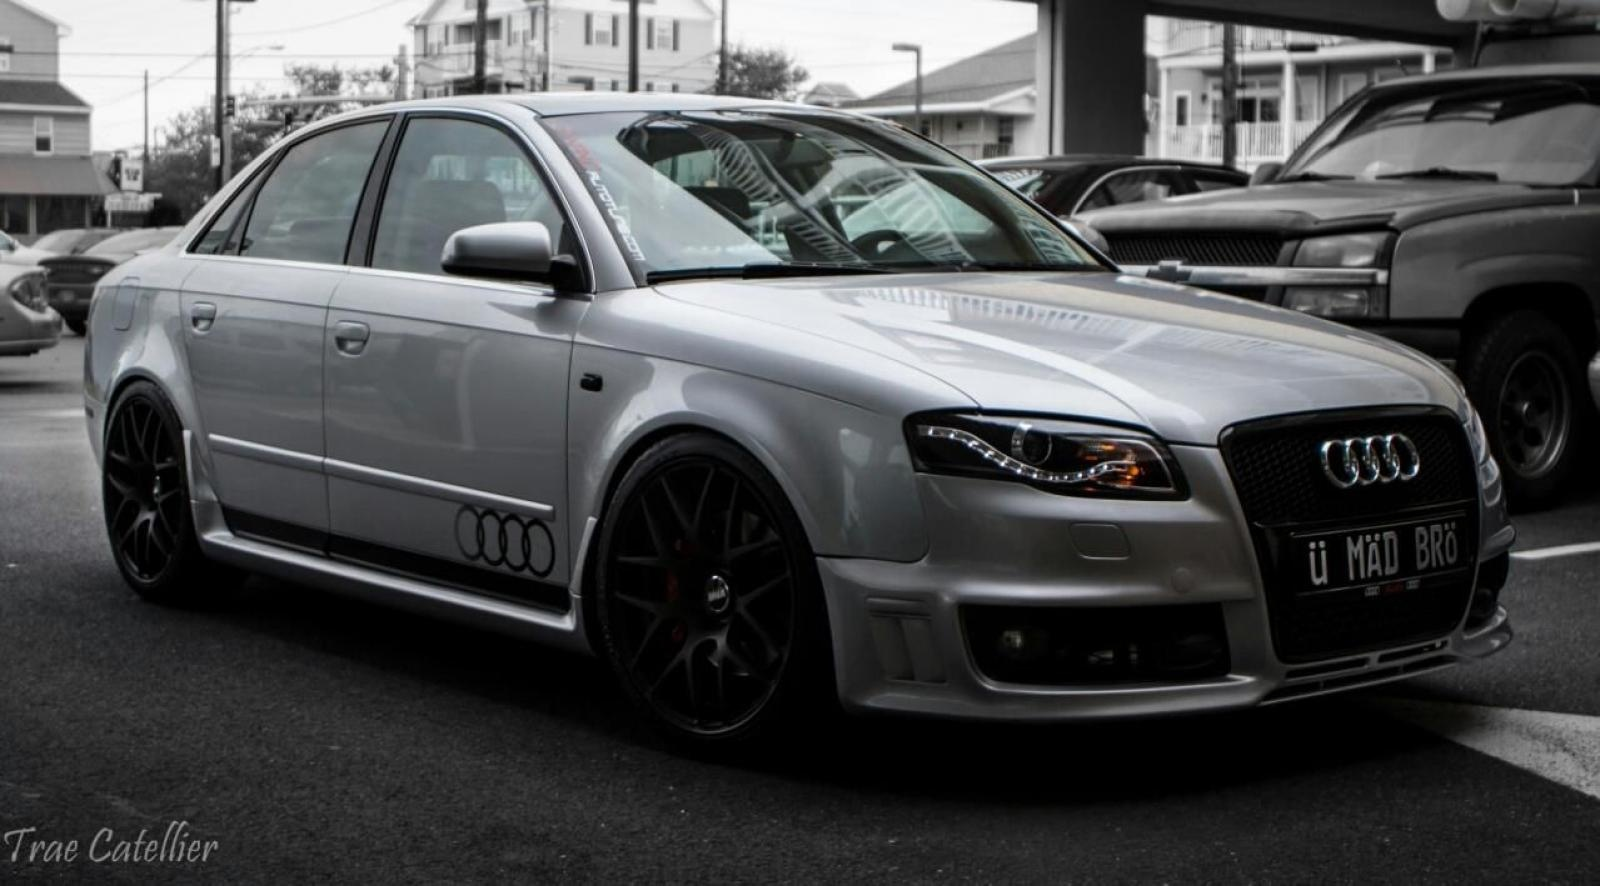 Audi A4 2010 Modified Inspirational 2007 Audi A4 Information and Photos Zombiedrive-1814 Of Best Of Audi A4 2010 Modified